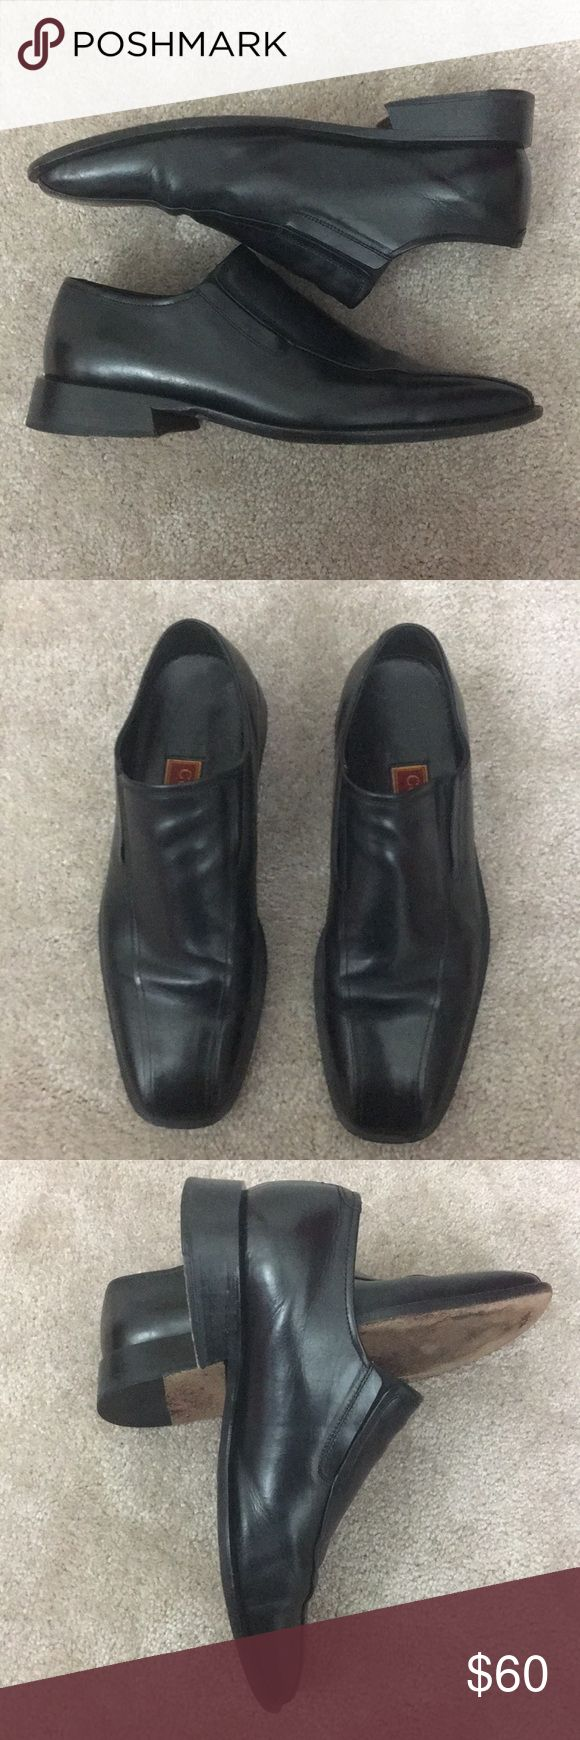 Cole Haan men's black loafers size 10.5 Classic black Cole Haan loafers. Perfect for casual or dressy events. Size 10.5 Cole Haan Shoes Loafers & Slip-Ons